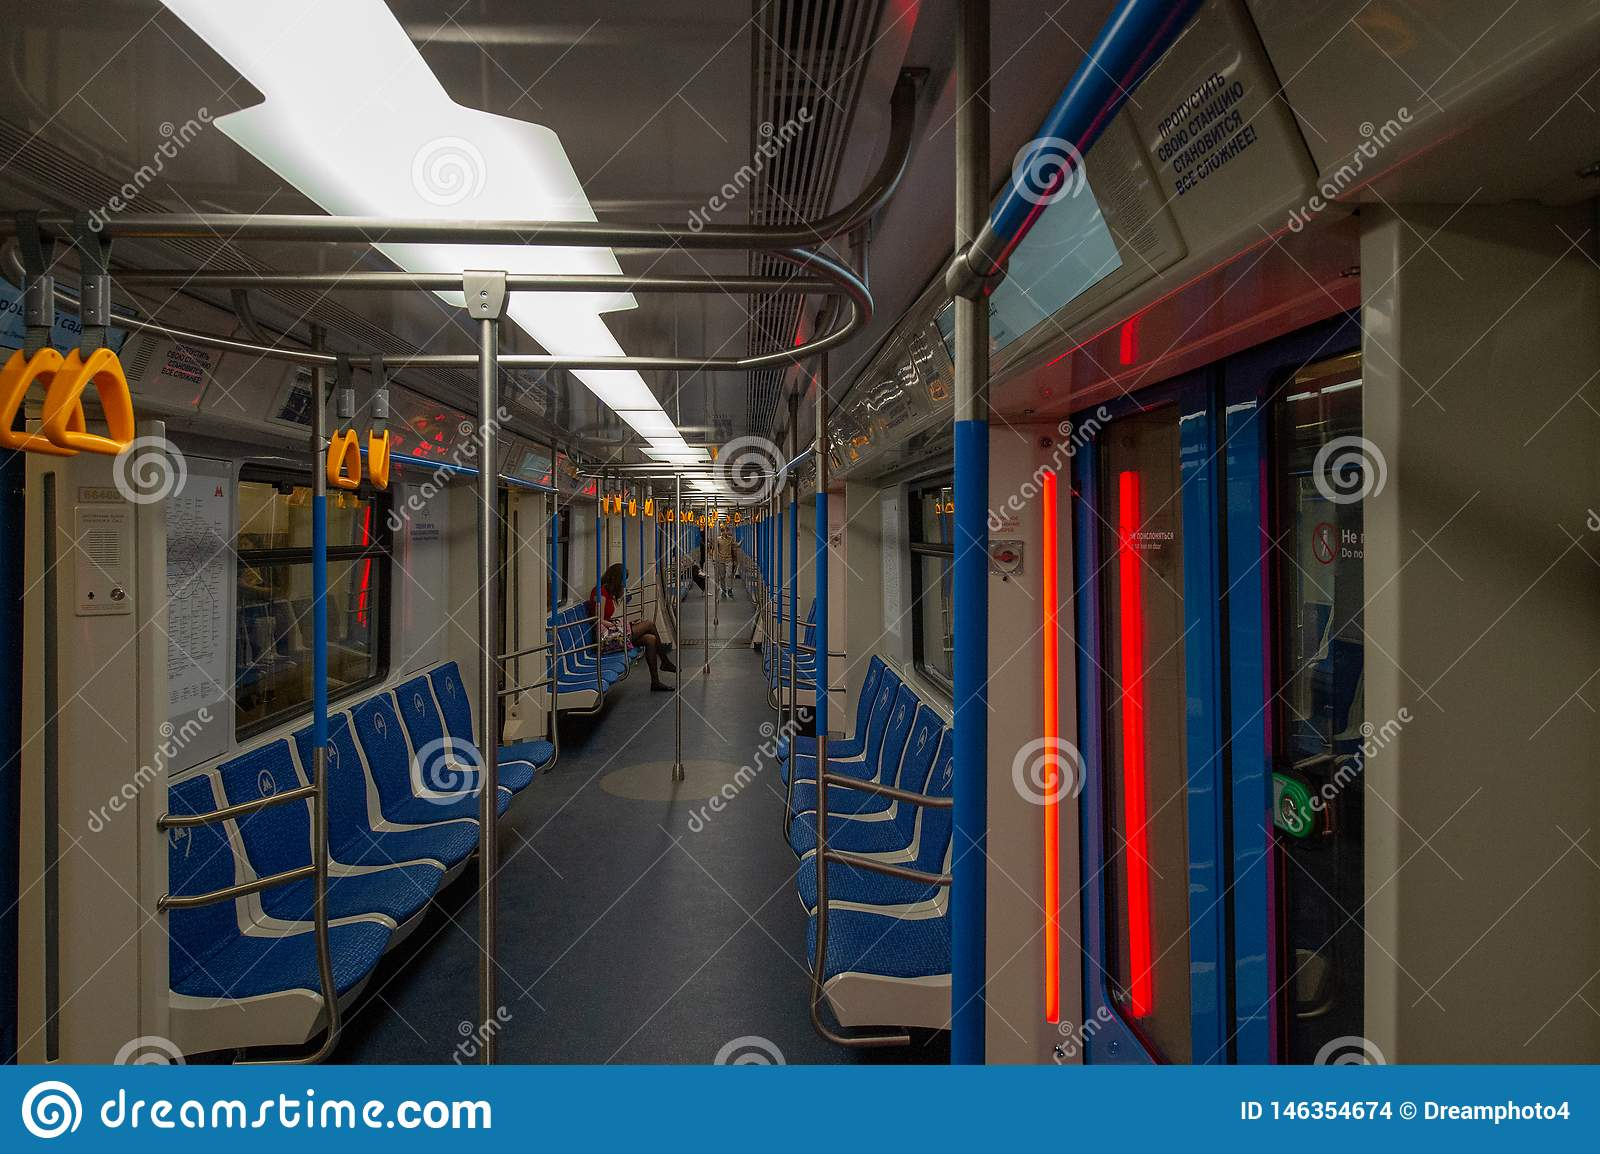 The prospect of Moscow metro wagon